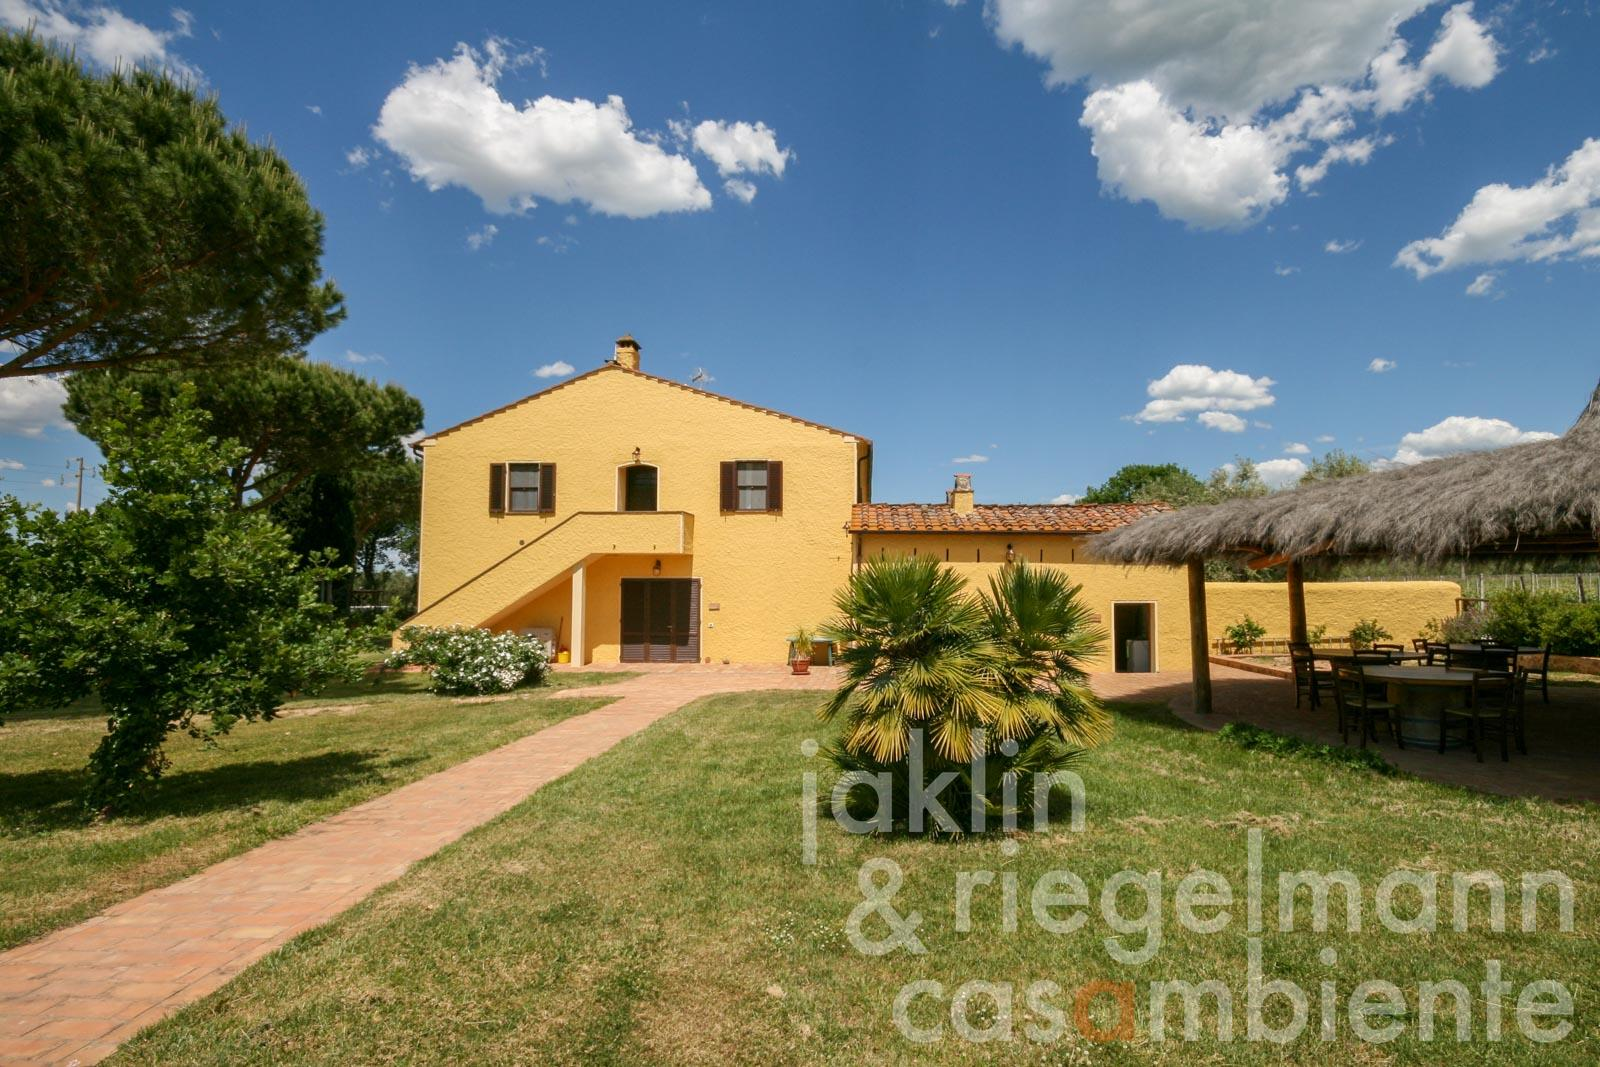 Country house in the DOC Bolgheri wine-growing area with vineyards, olive grove and agriturismo